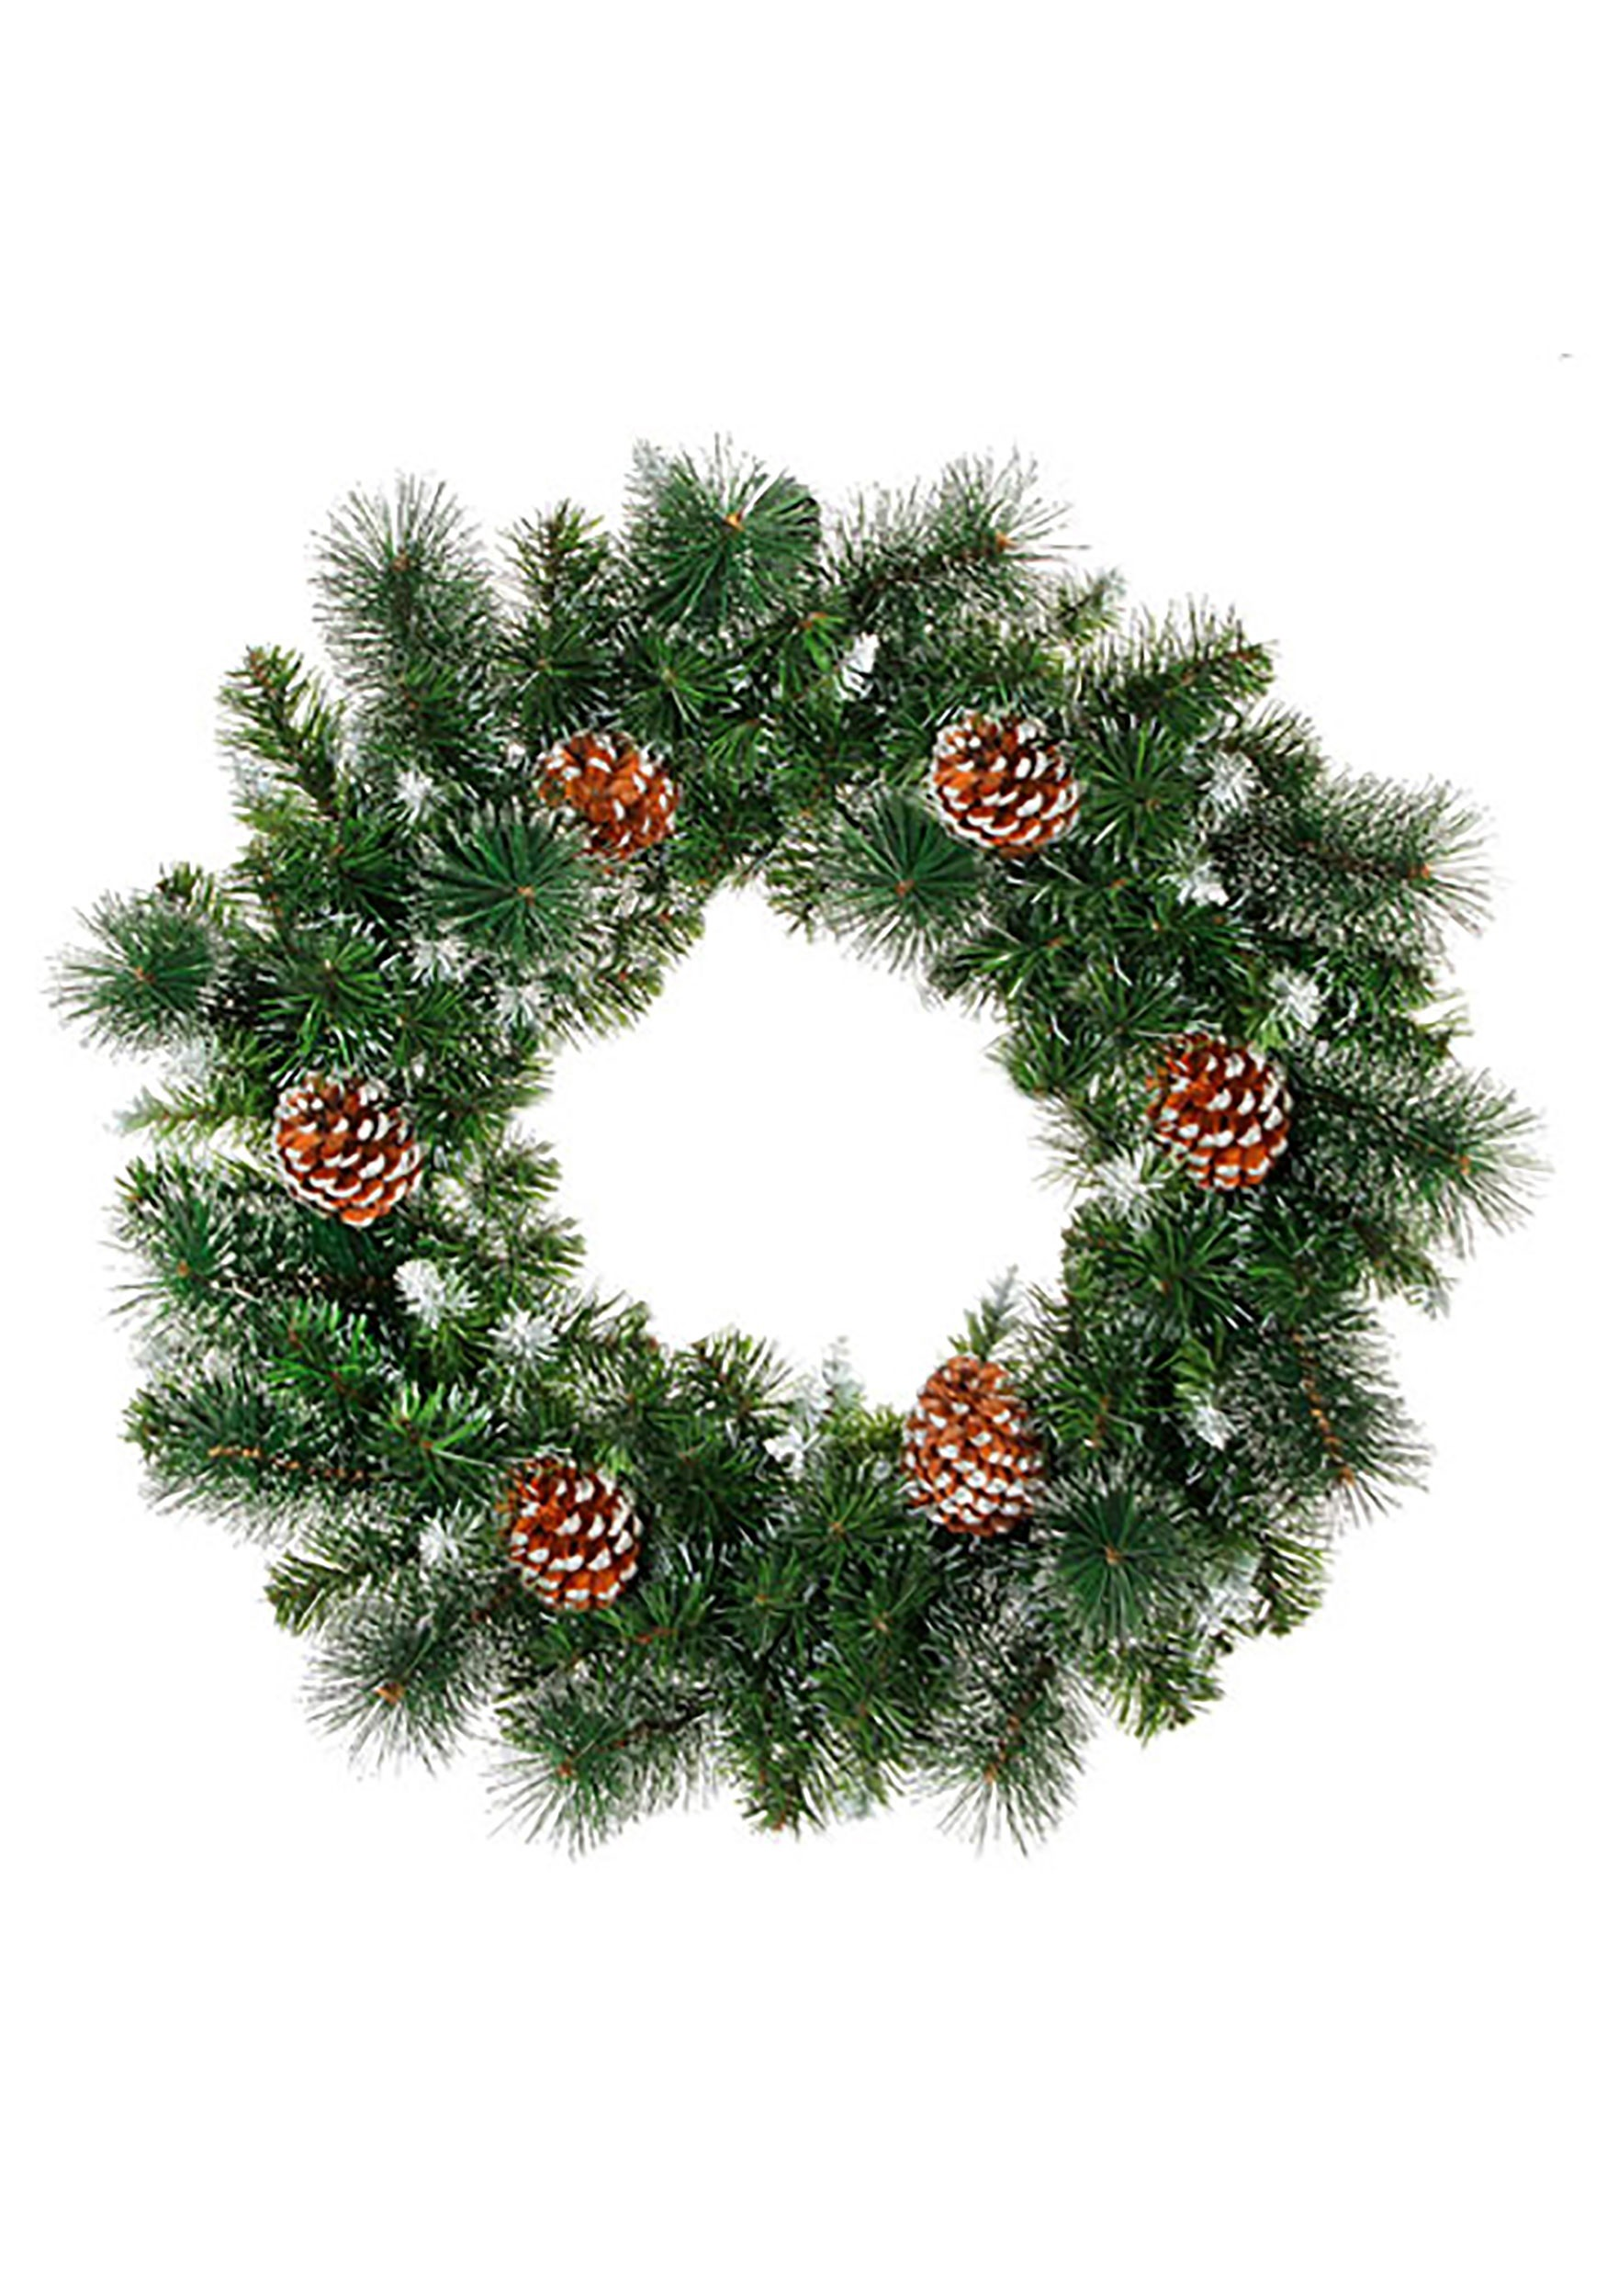 24 Quot Christmas Wreath With Pinecones